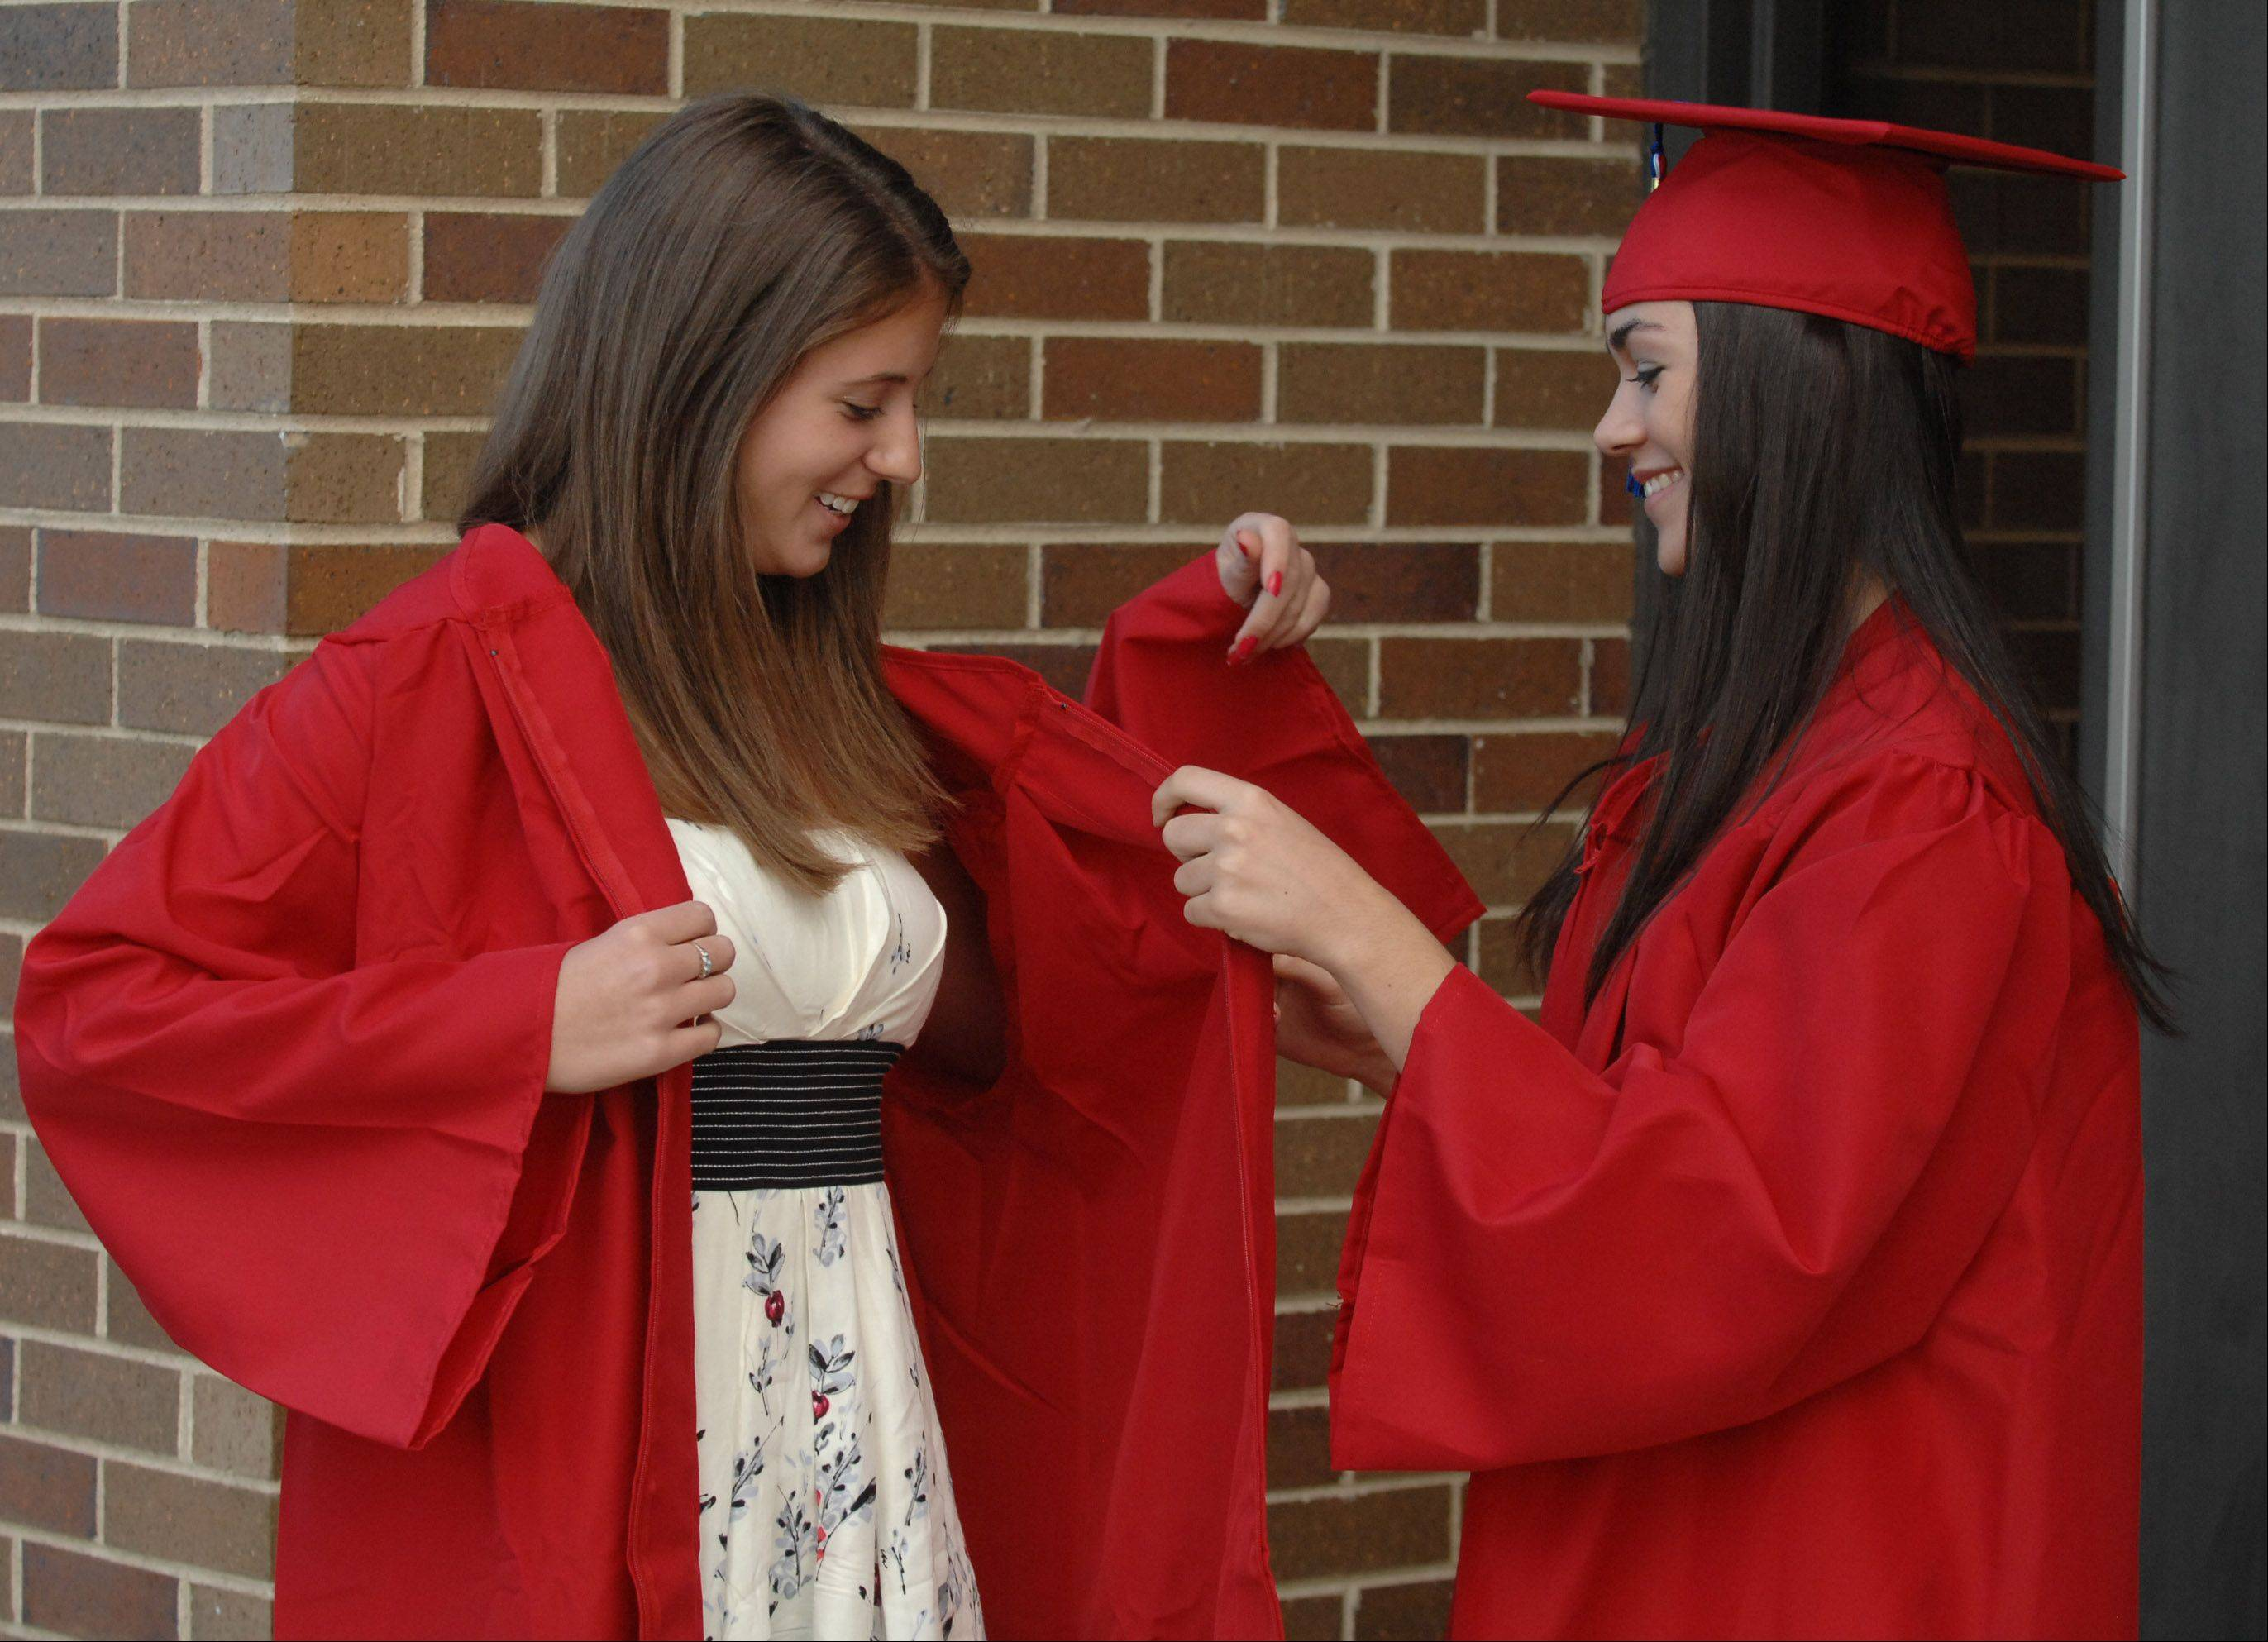 Patrica Buehler, left, and Michelle Tykvart help each other with their gowns before the Glenbard South graduation in Glen Ellyn Friday.